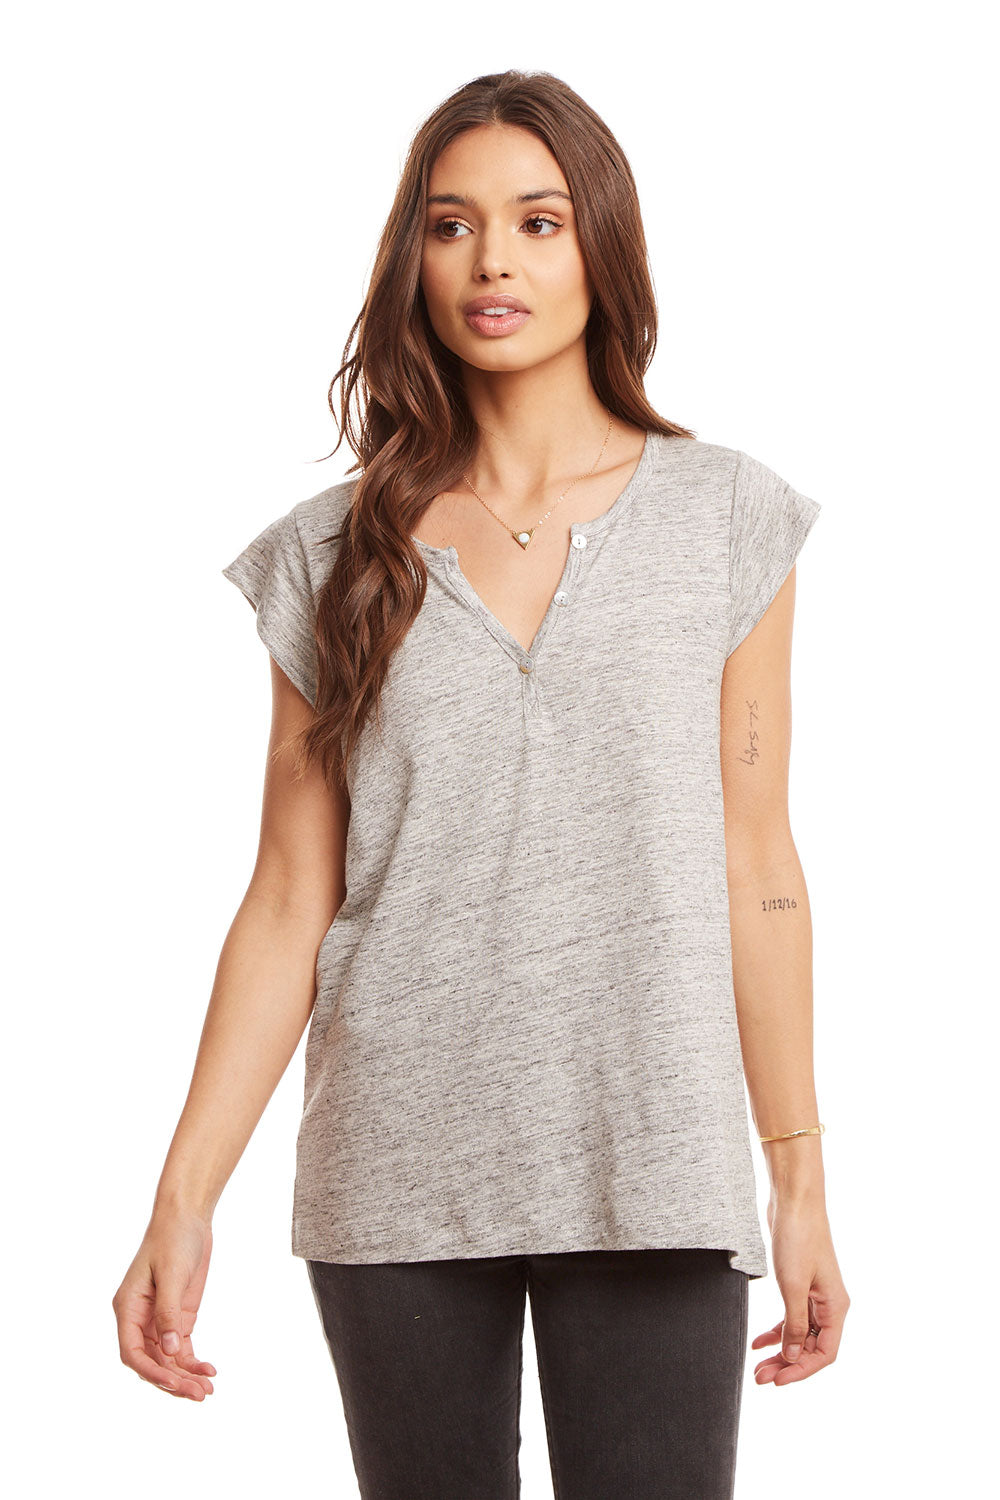 Linen Jersey Button Front Cap Sleeve Baby Henley WOMENS chaserbrand4.myshopify.com